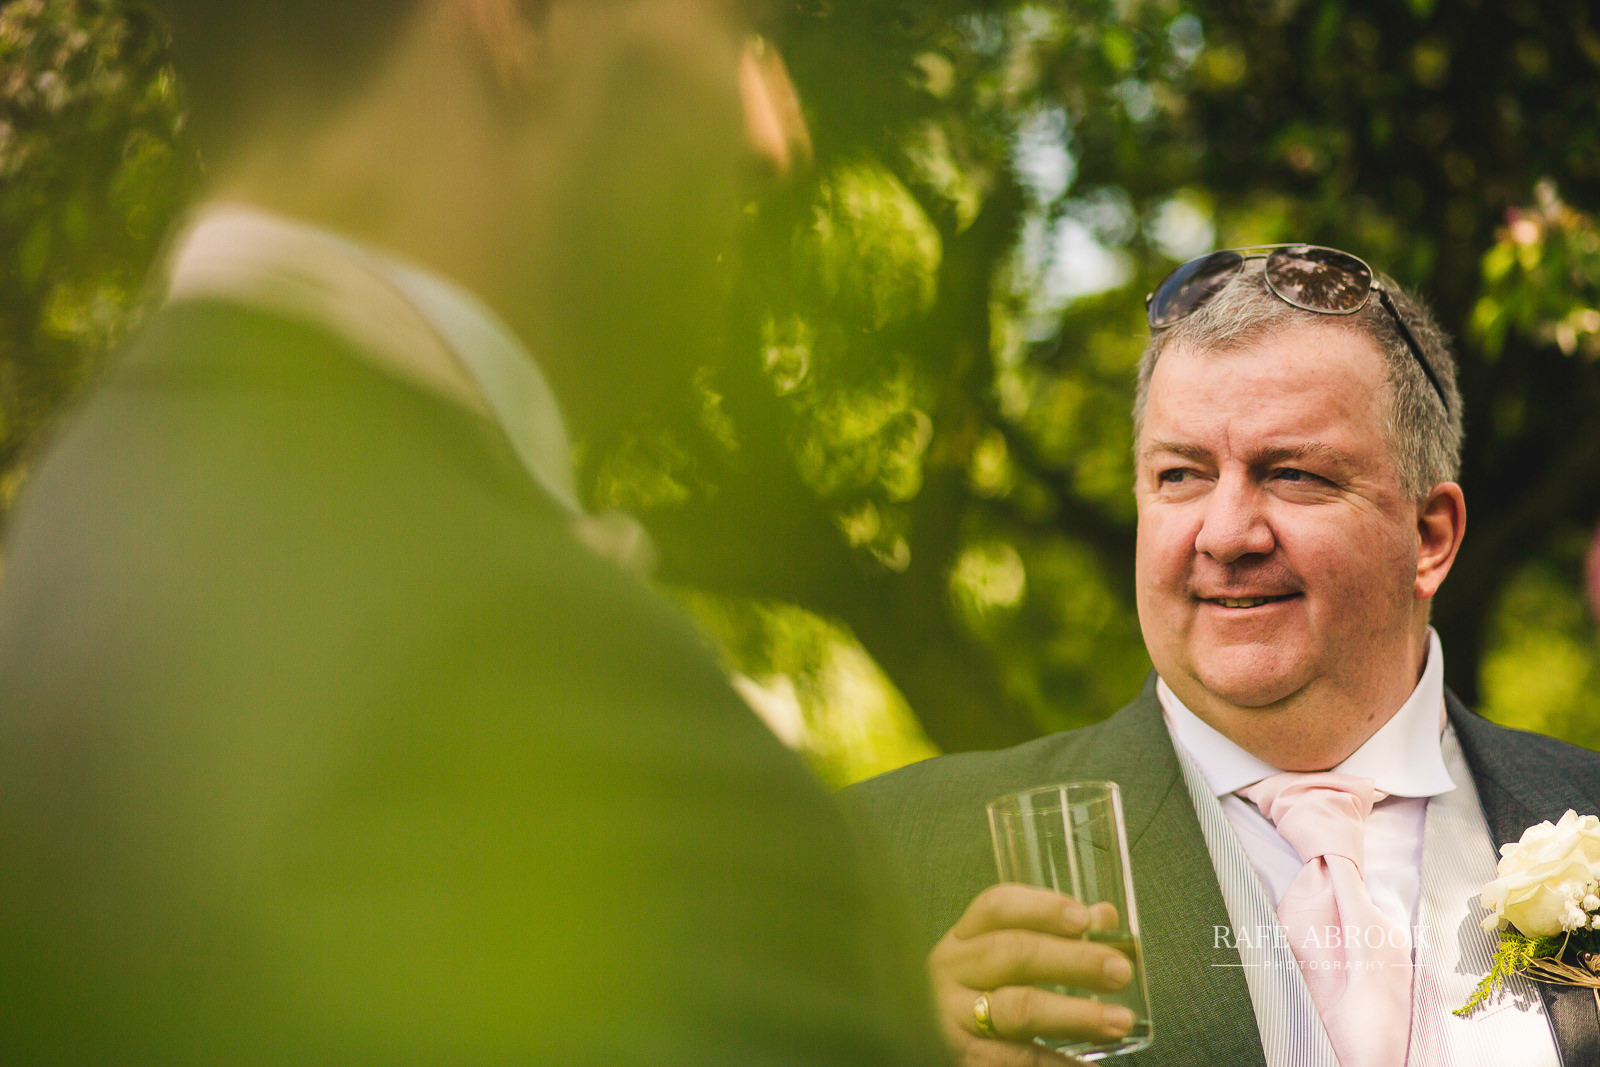 south farm wedding royston hertfordshire wedding photographer rafe abrook photography-1400.jpg